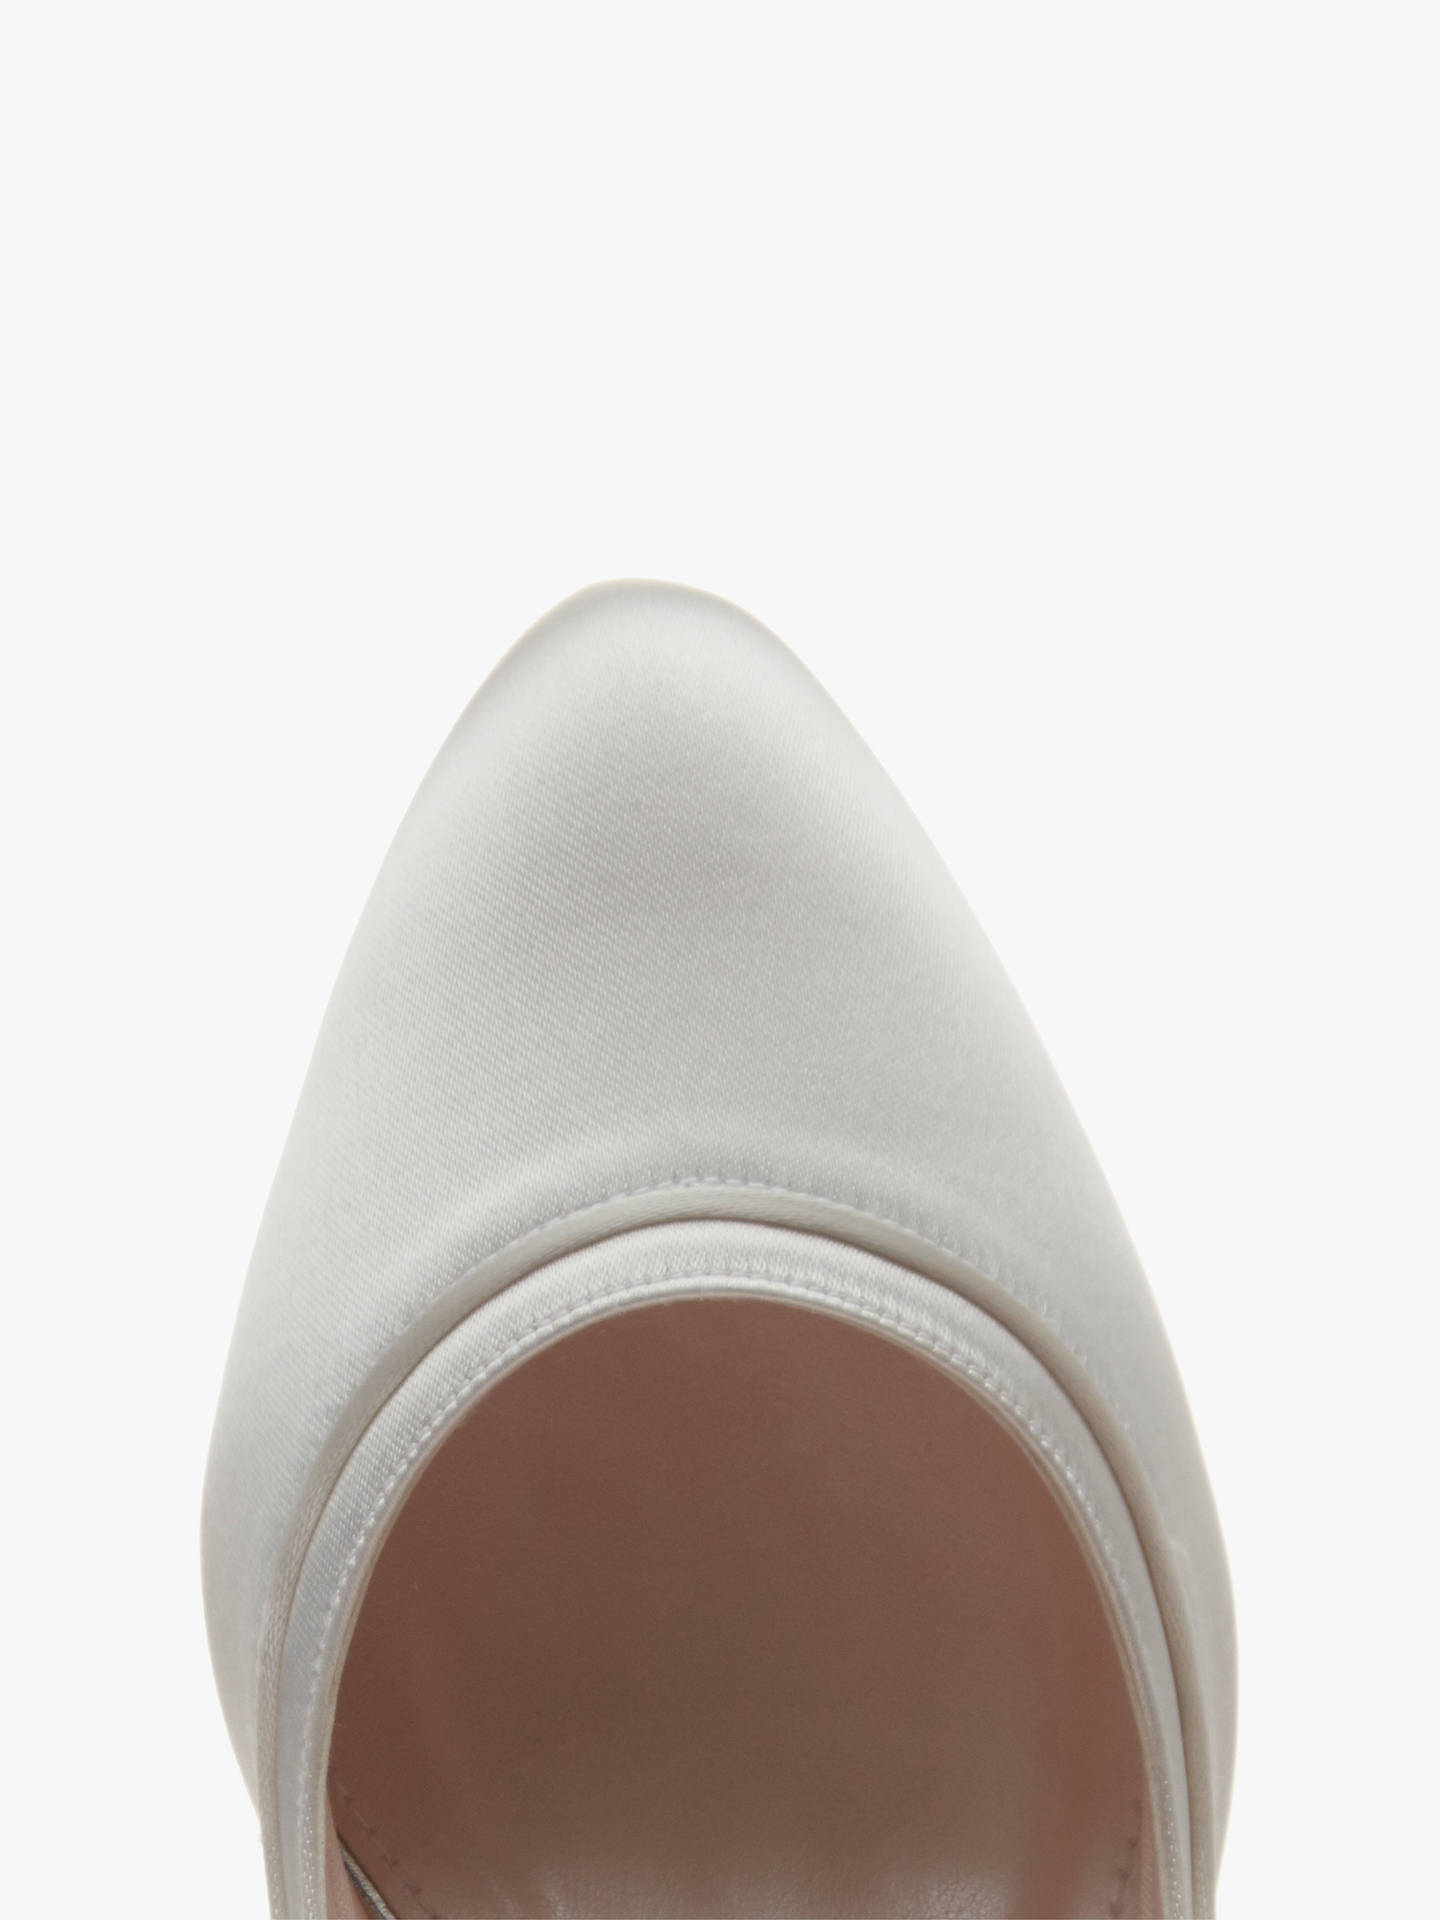 BuyRainbow Club Hollie Kitten Heel Court Shoes, Ivory, 3 Online at johnlewis.com